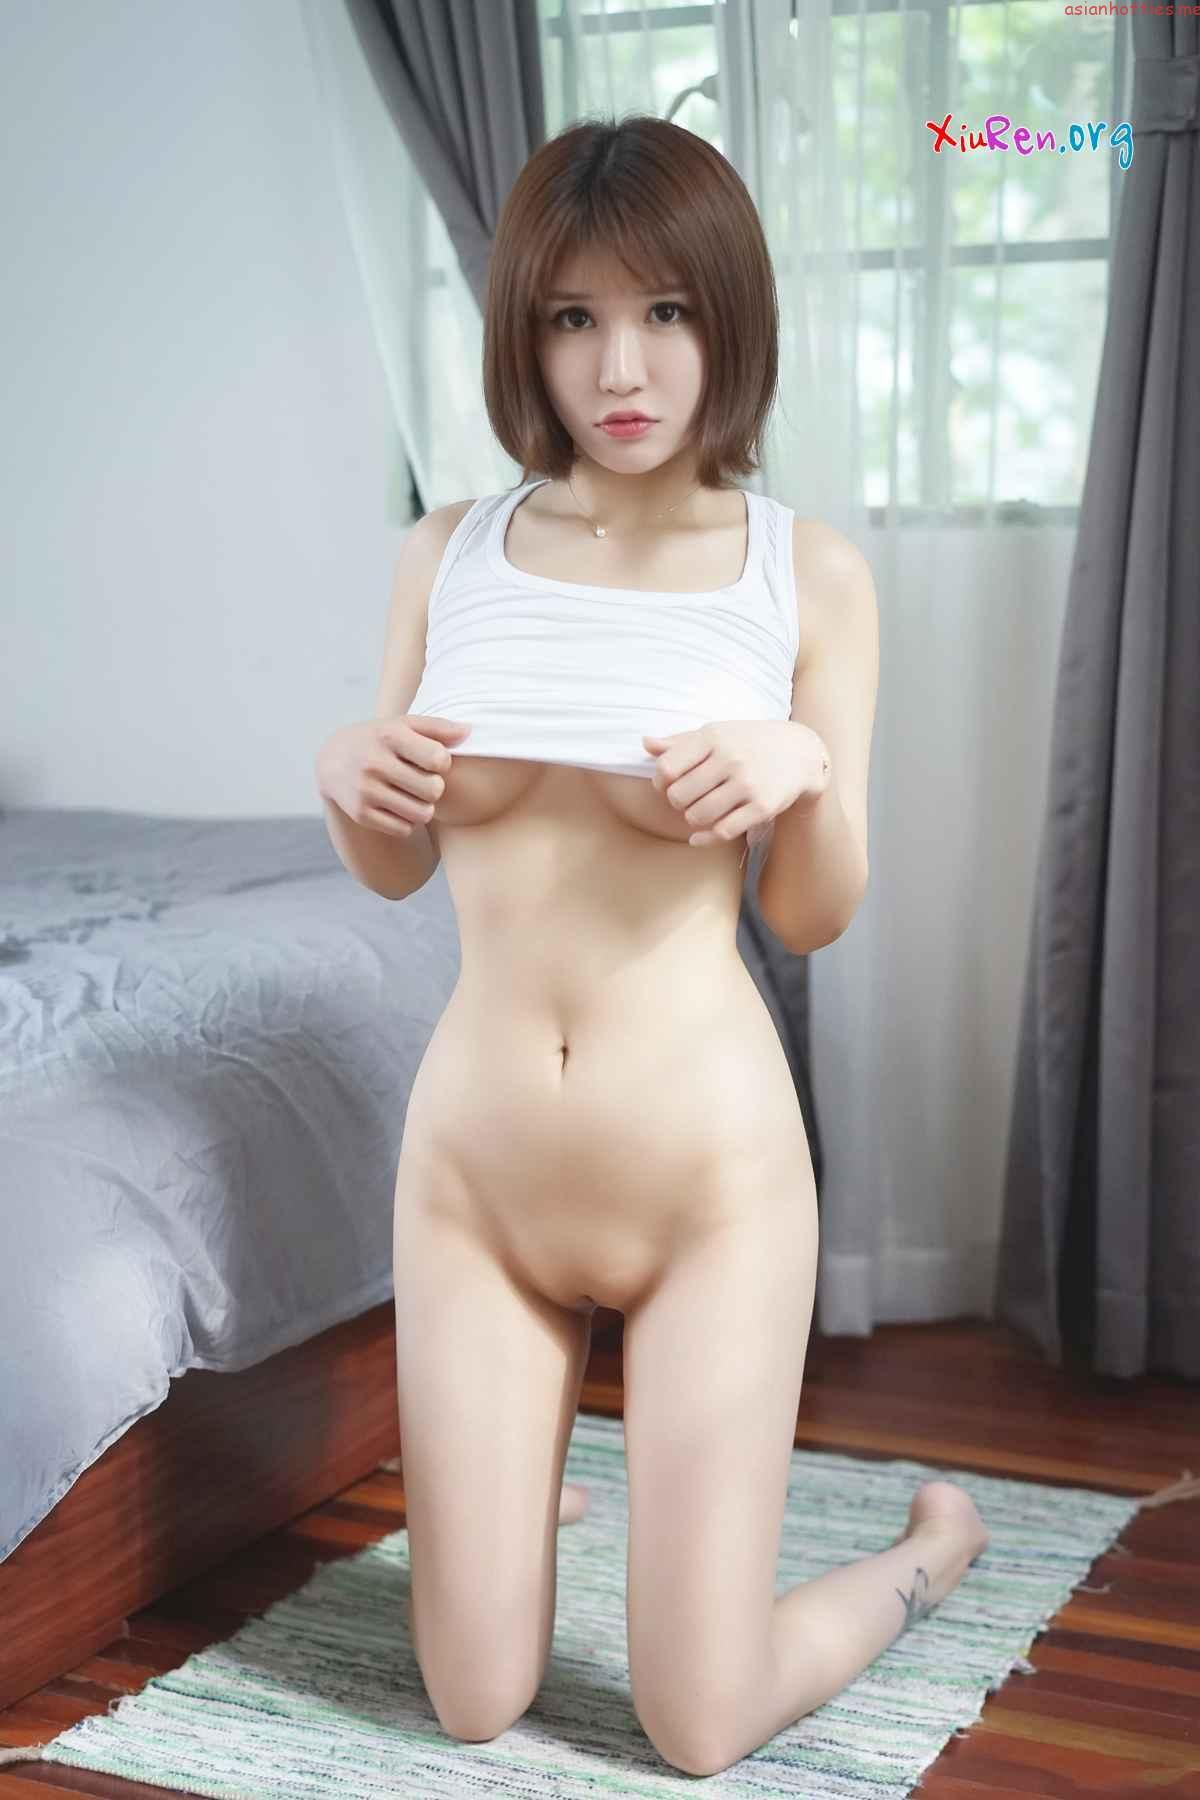 Naked Chinese Girls Photo